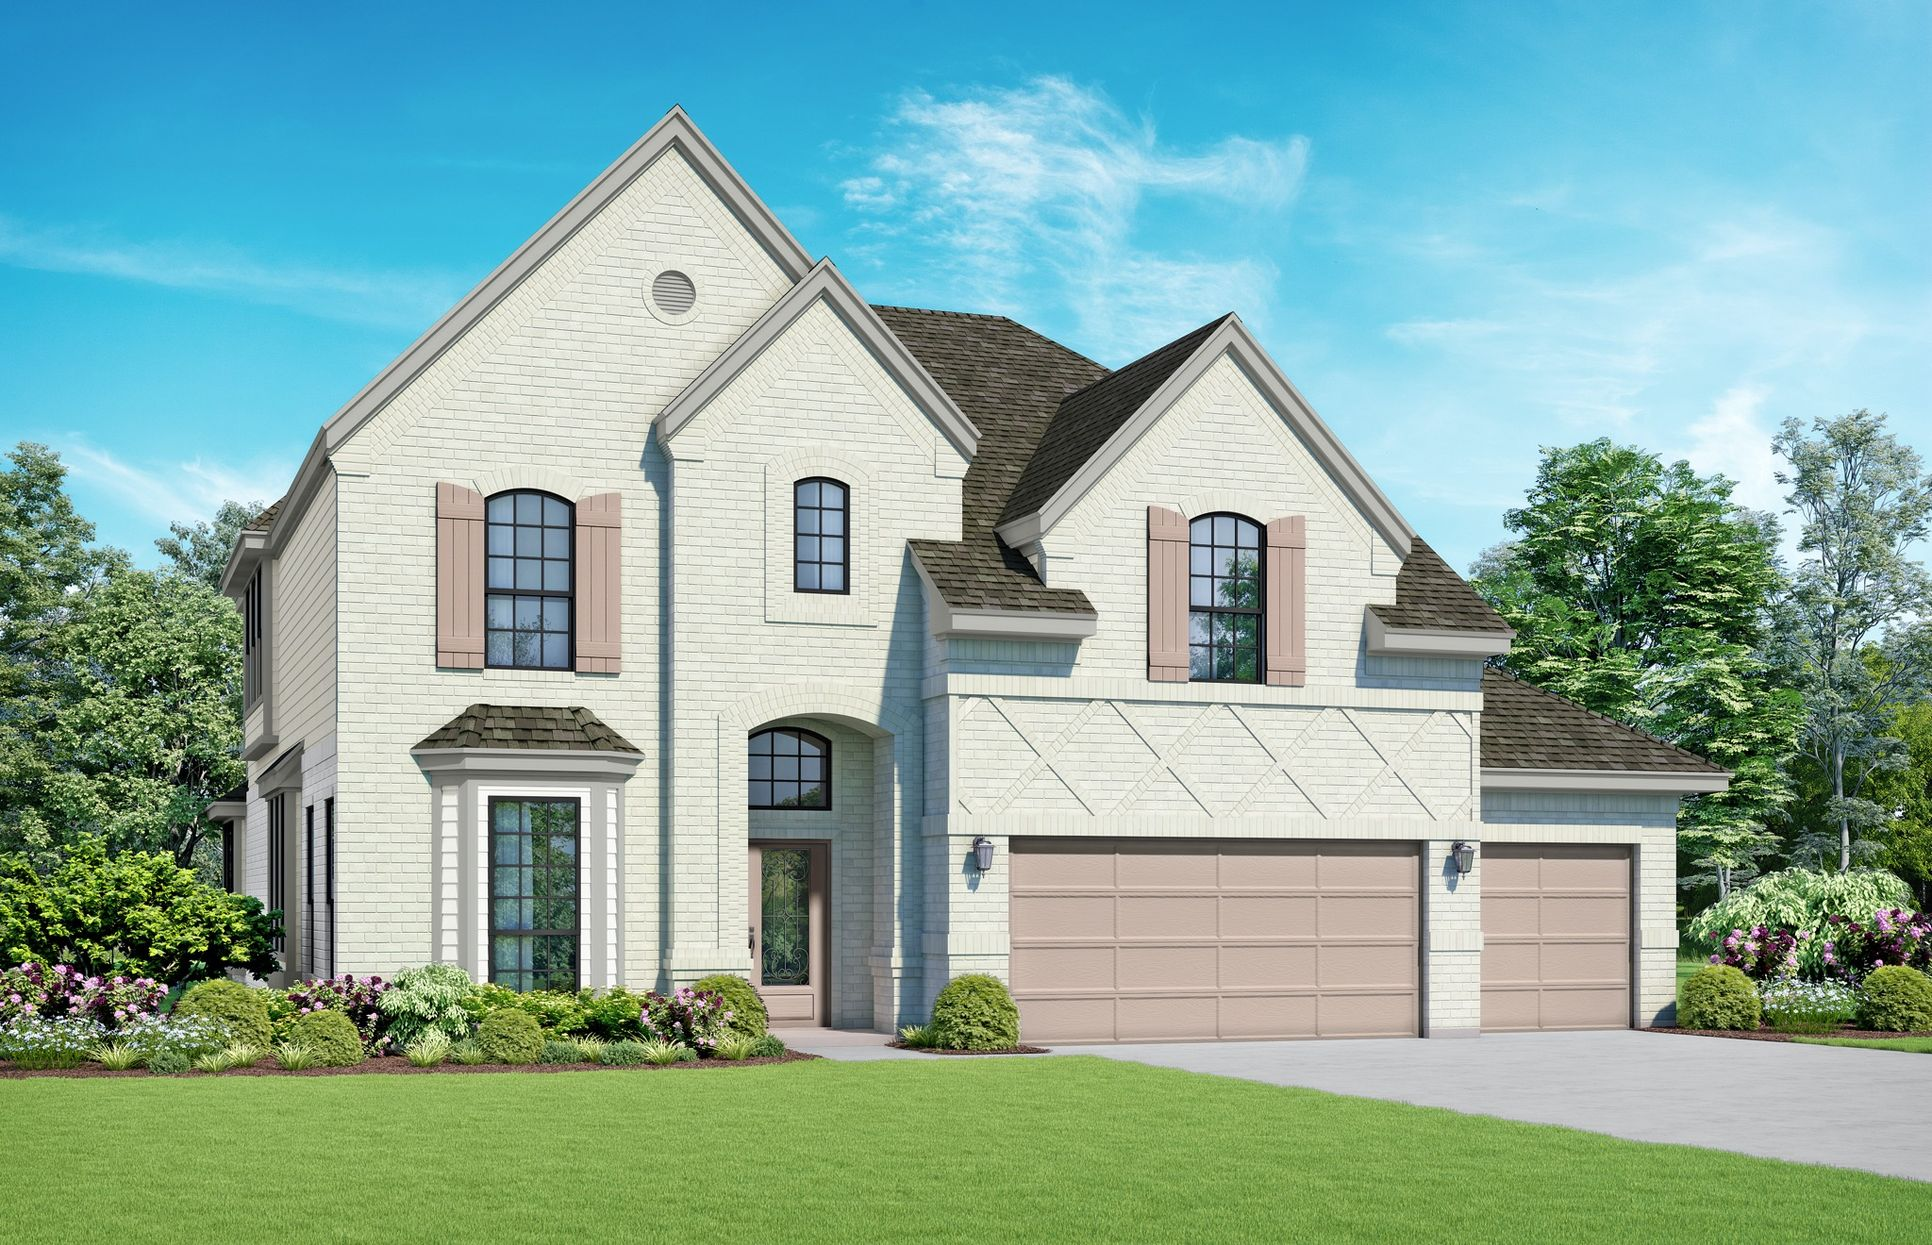 San Patricia Elevation A. Images are artist renderings and will differ from the actual home built.:San Patricia Elevation A